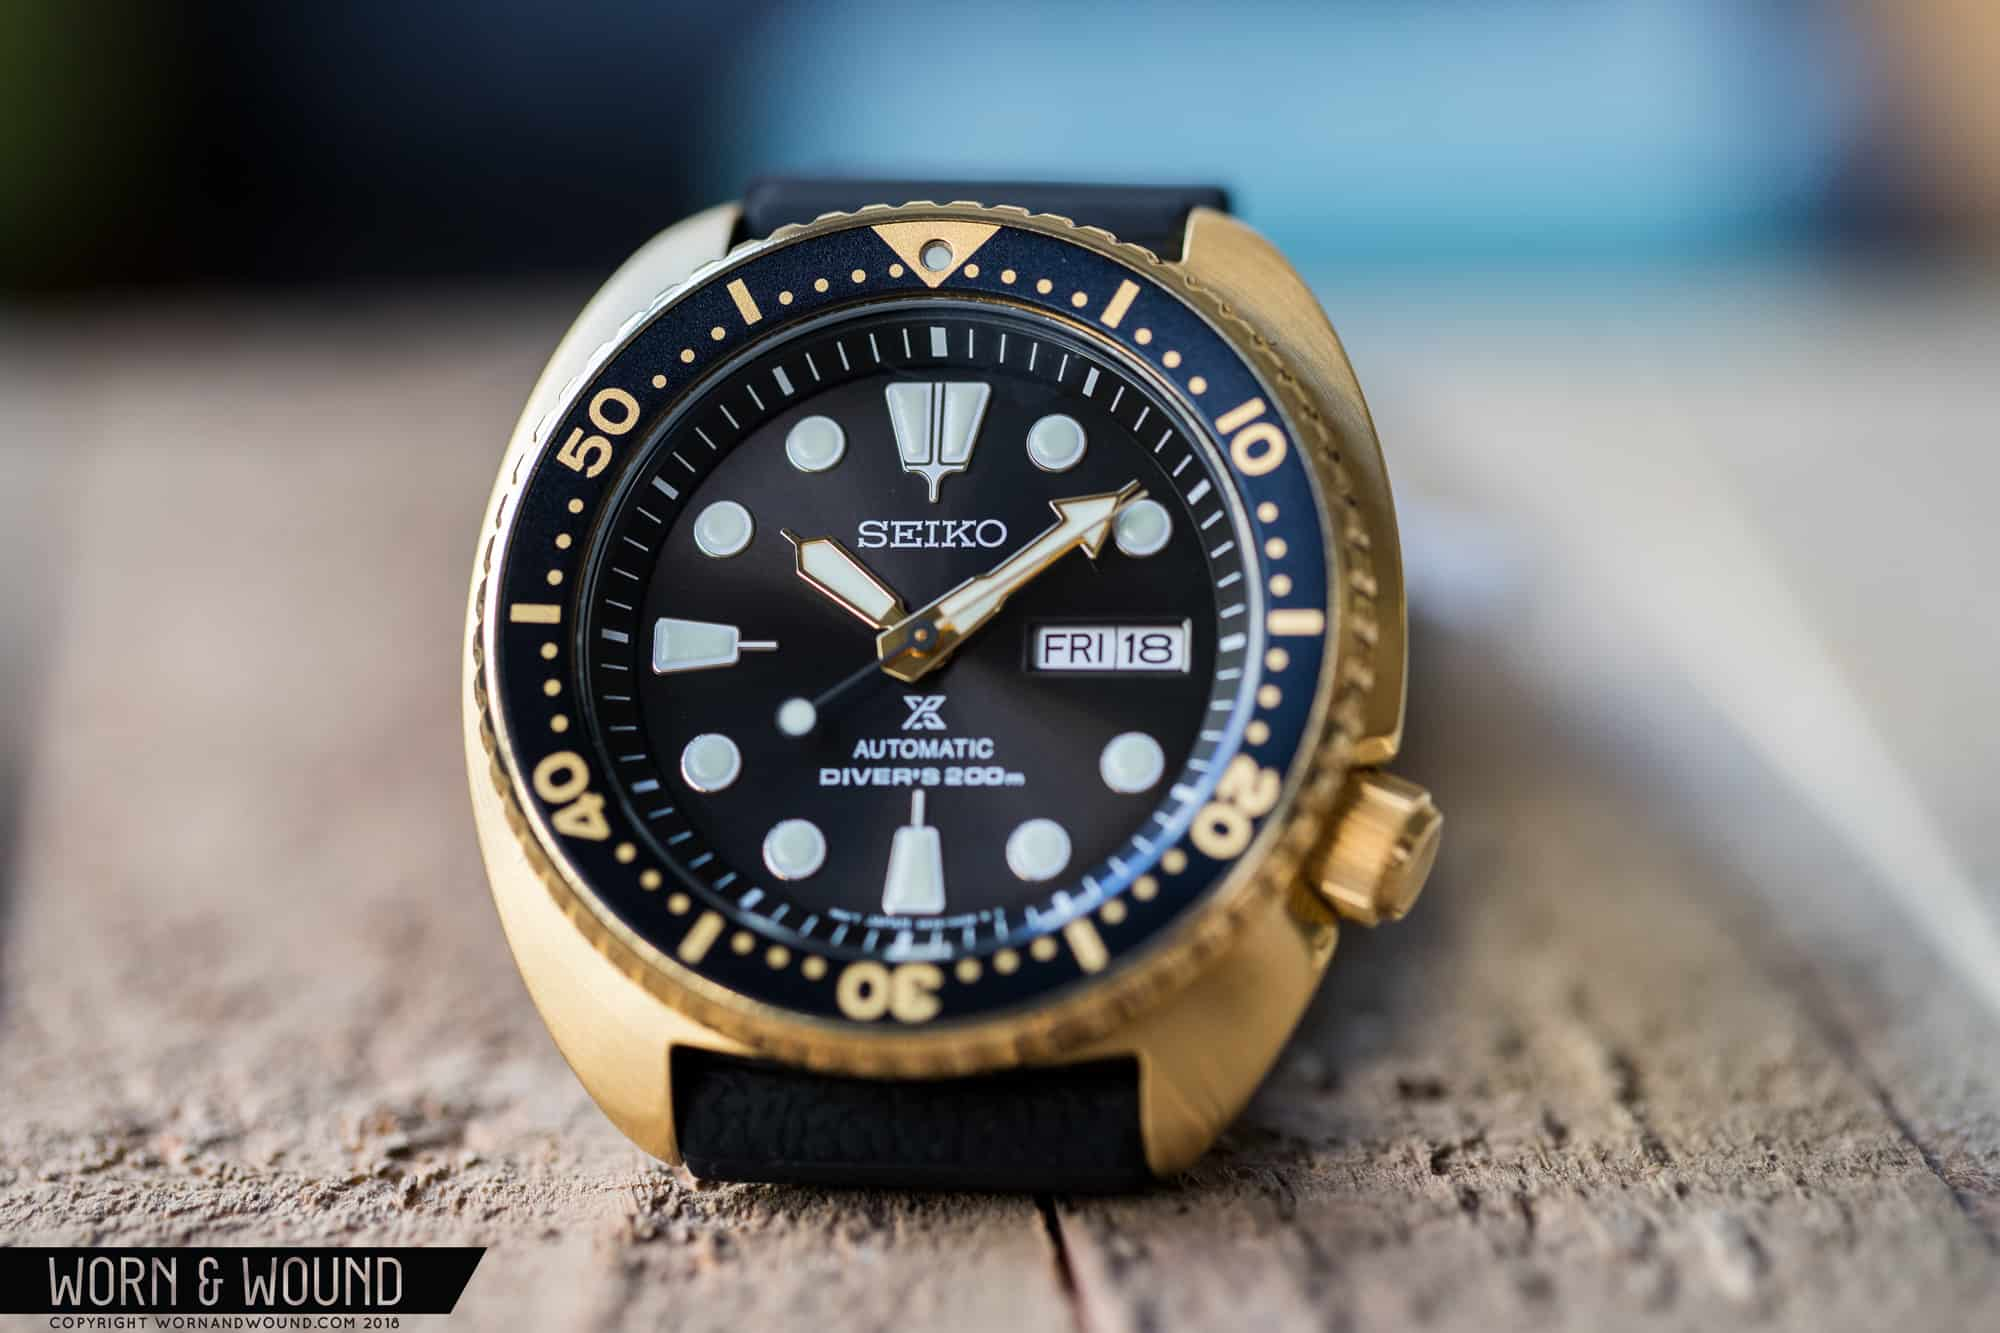 Seiko Srp Hands On Video With The Seiko Prospex Ref Srpc44